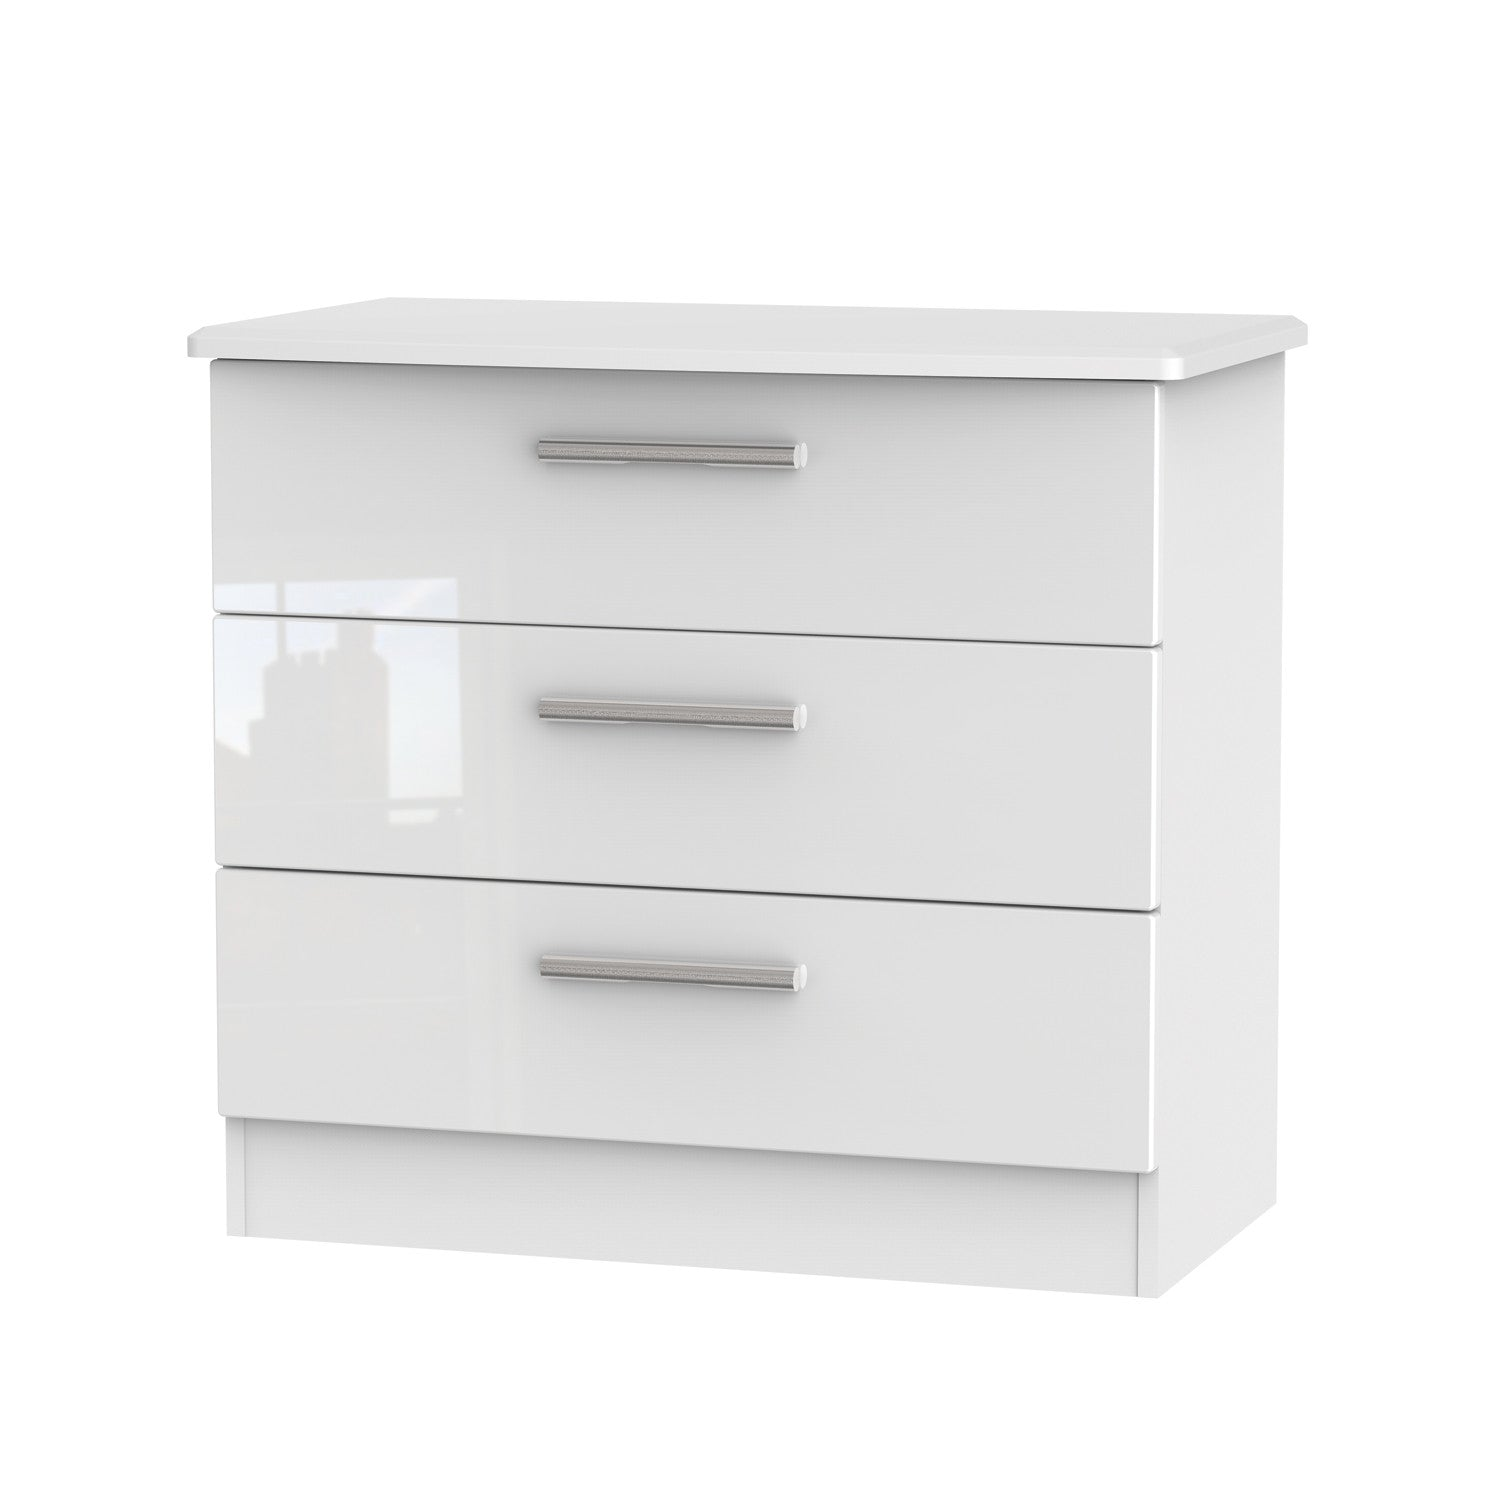 Kensington Chest of Drawers - 3 Drawer